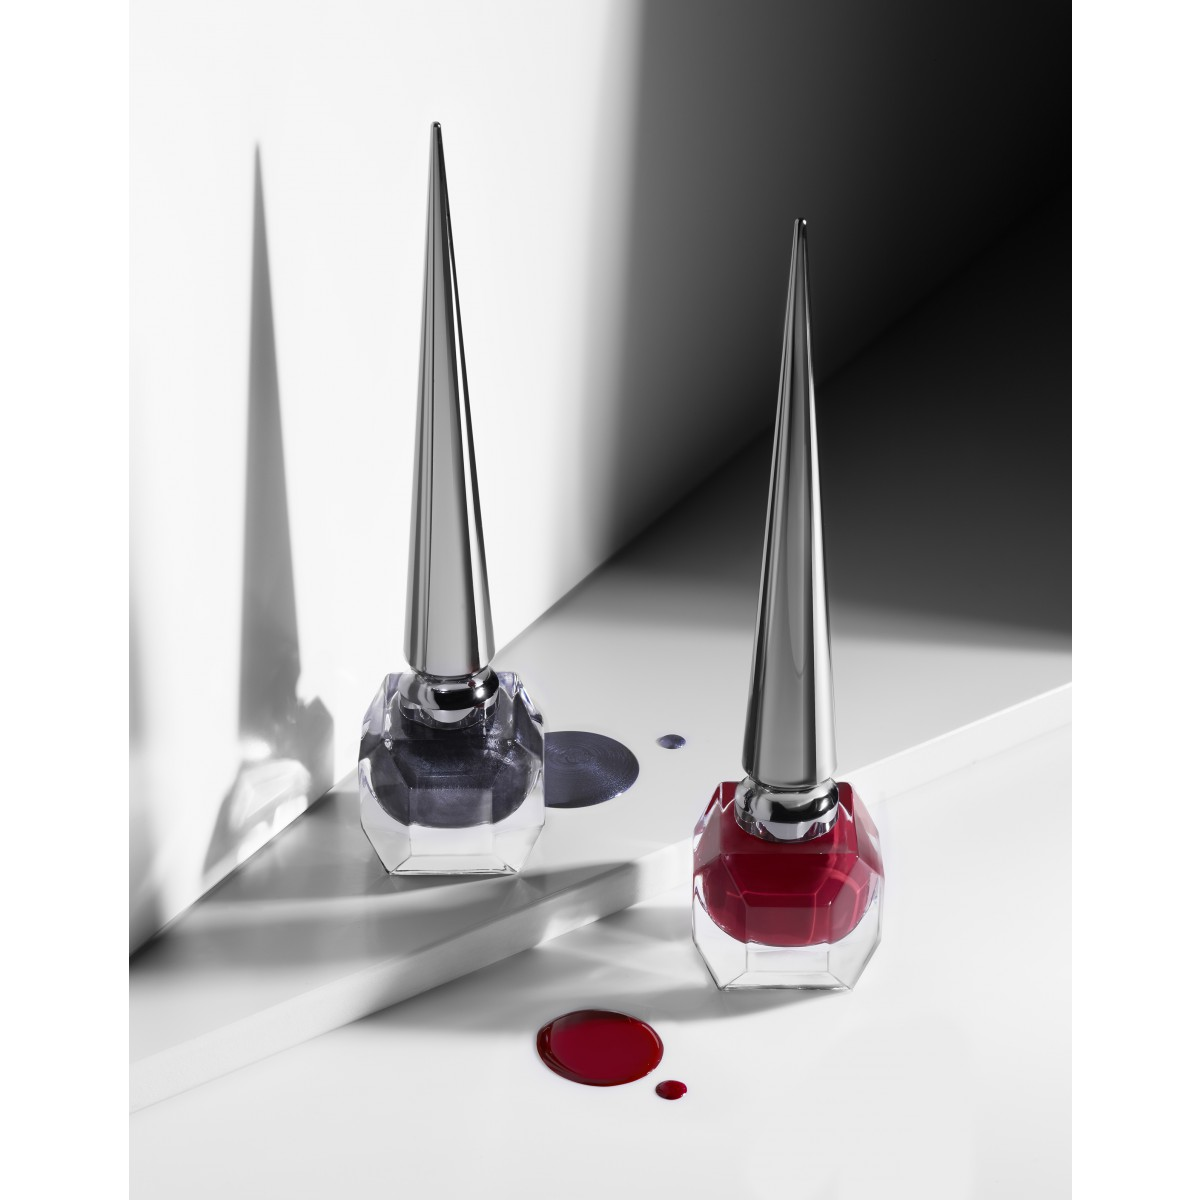 Beauty - Miss Mars - Christian Louboutin